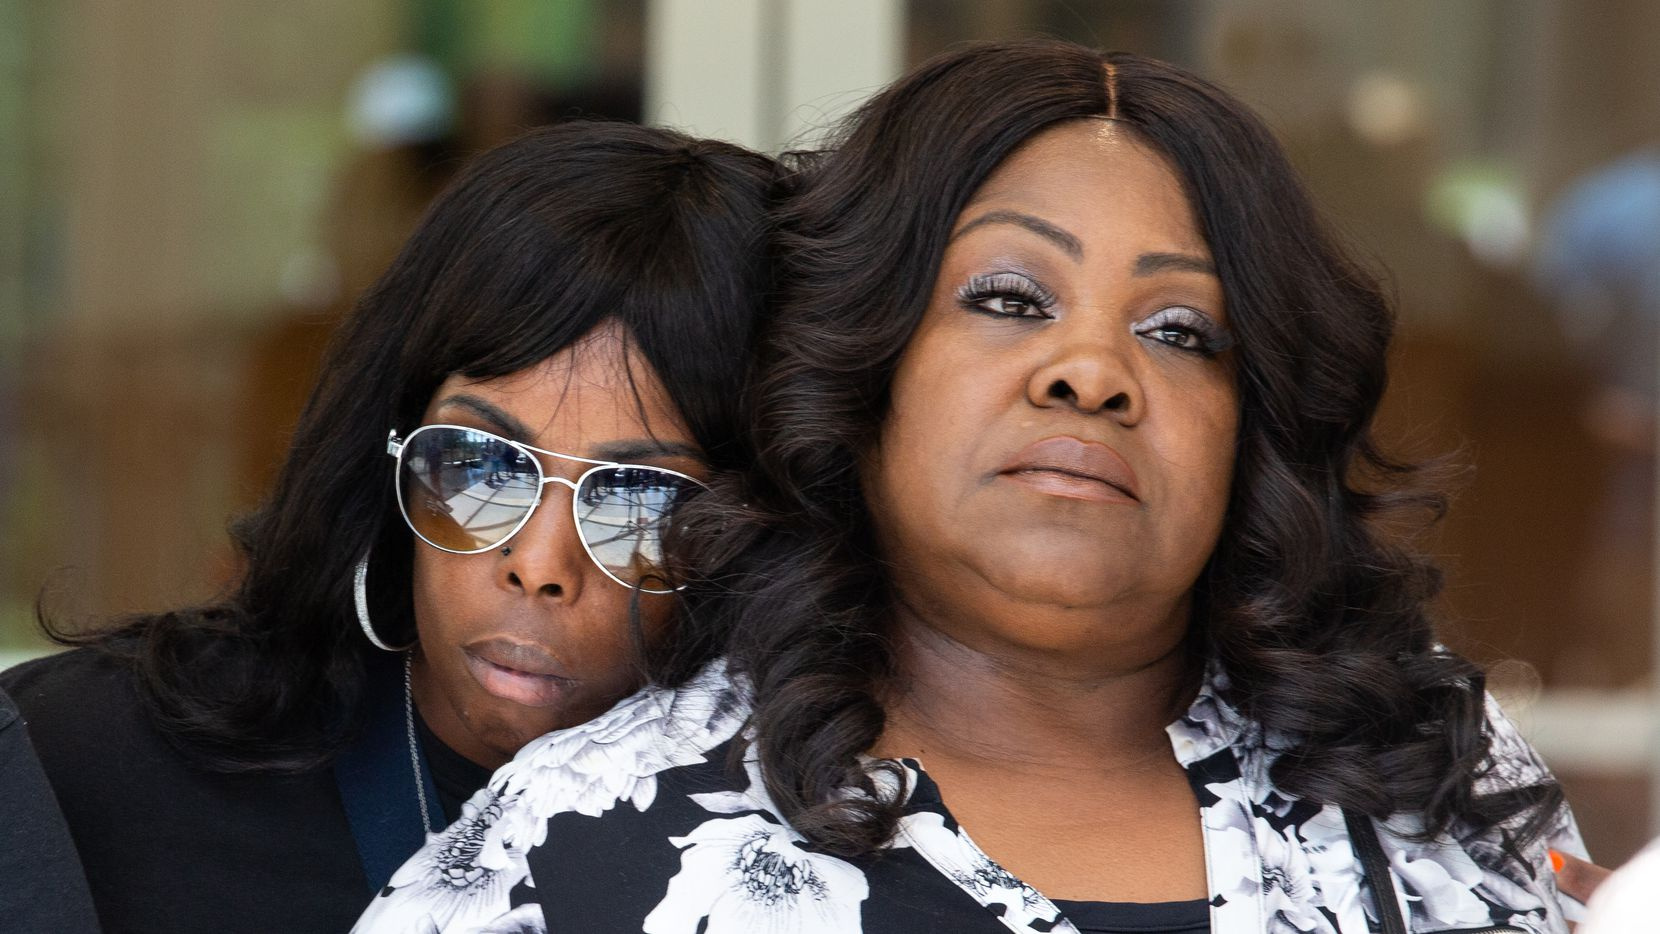 Kamona Nelson leans on LaSandra Scott after LaSandra spoke at a press conference at the Collin County Courthouse on July 12, 2021, three days after the release of a 41 minute video leading up to Marvin Scott III's death at the Collin County Jail. (Shelby Tauber/Special Contributor)